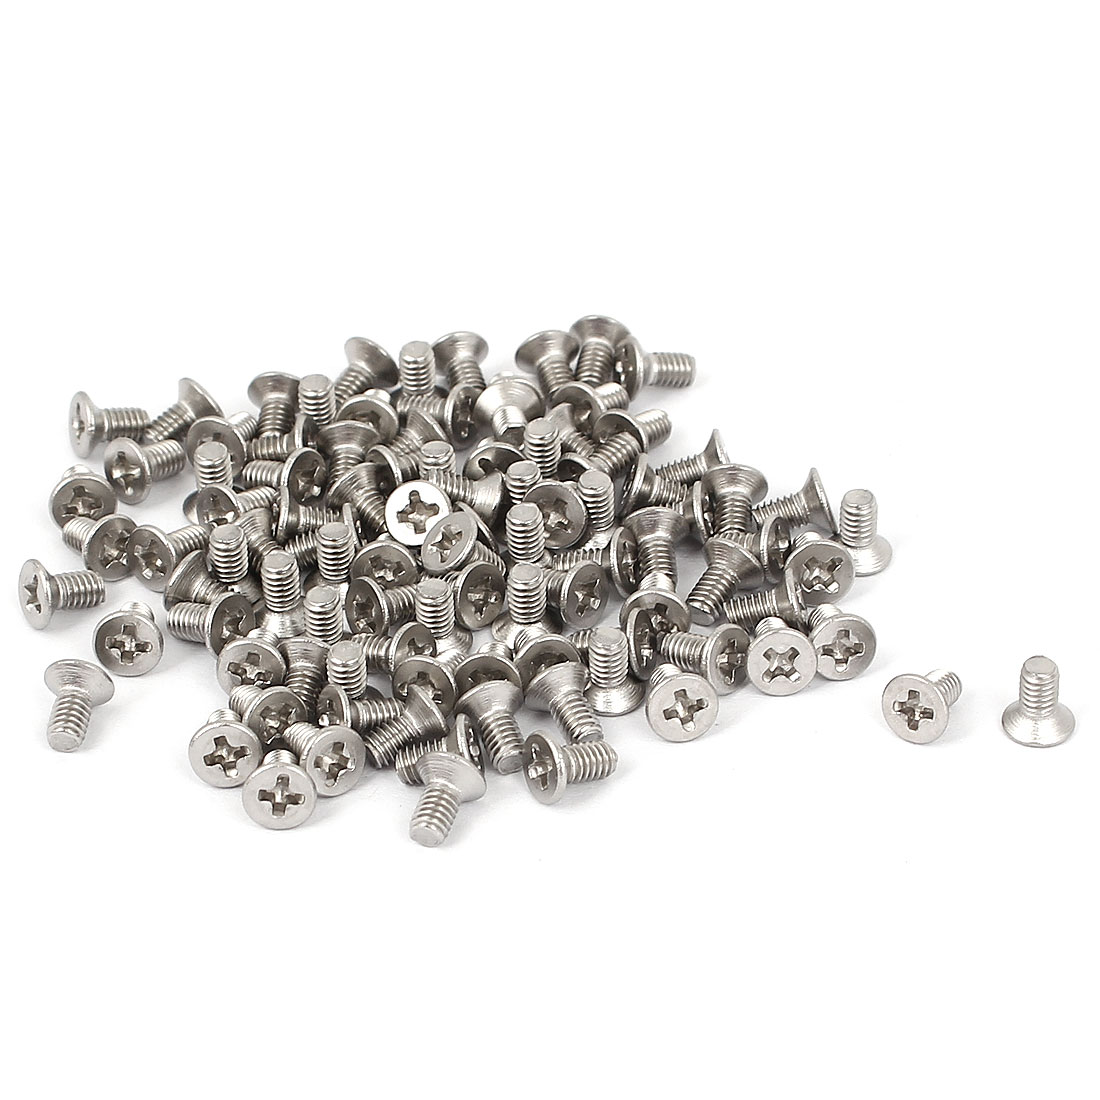 M2.5x5mm Stainless Steel Phillips Flat Countersunk Head Screws 100pcs